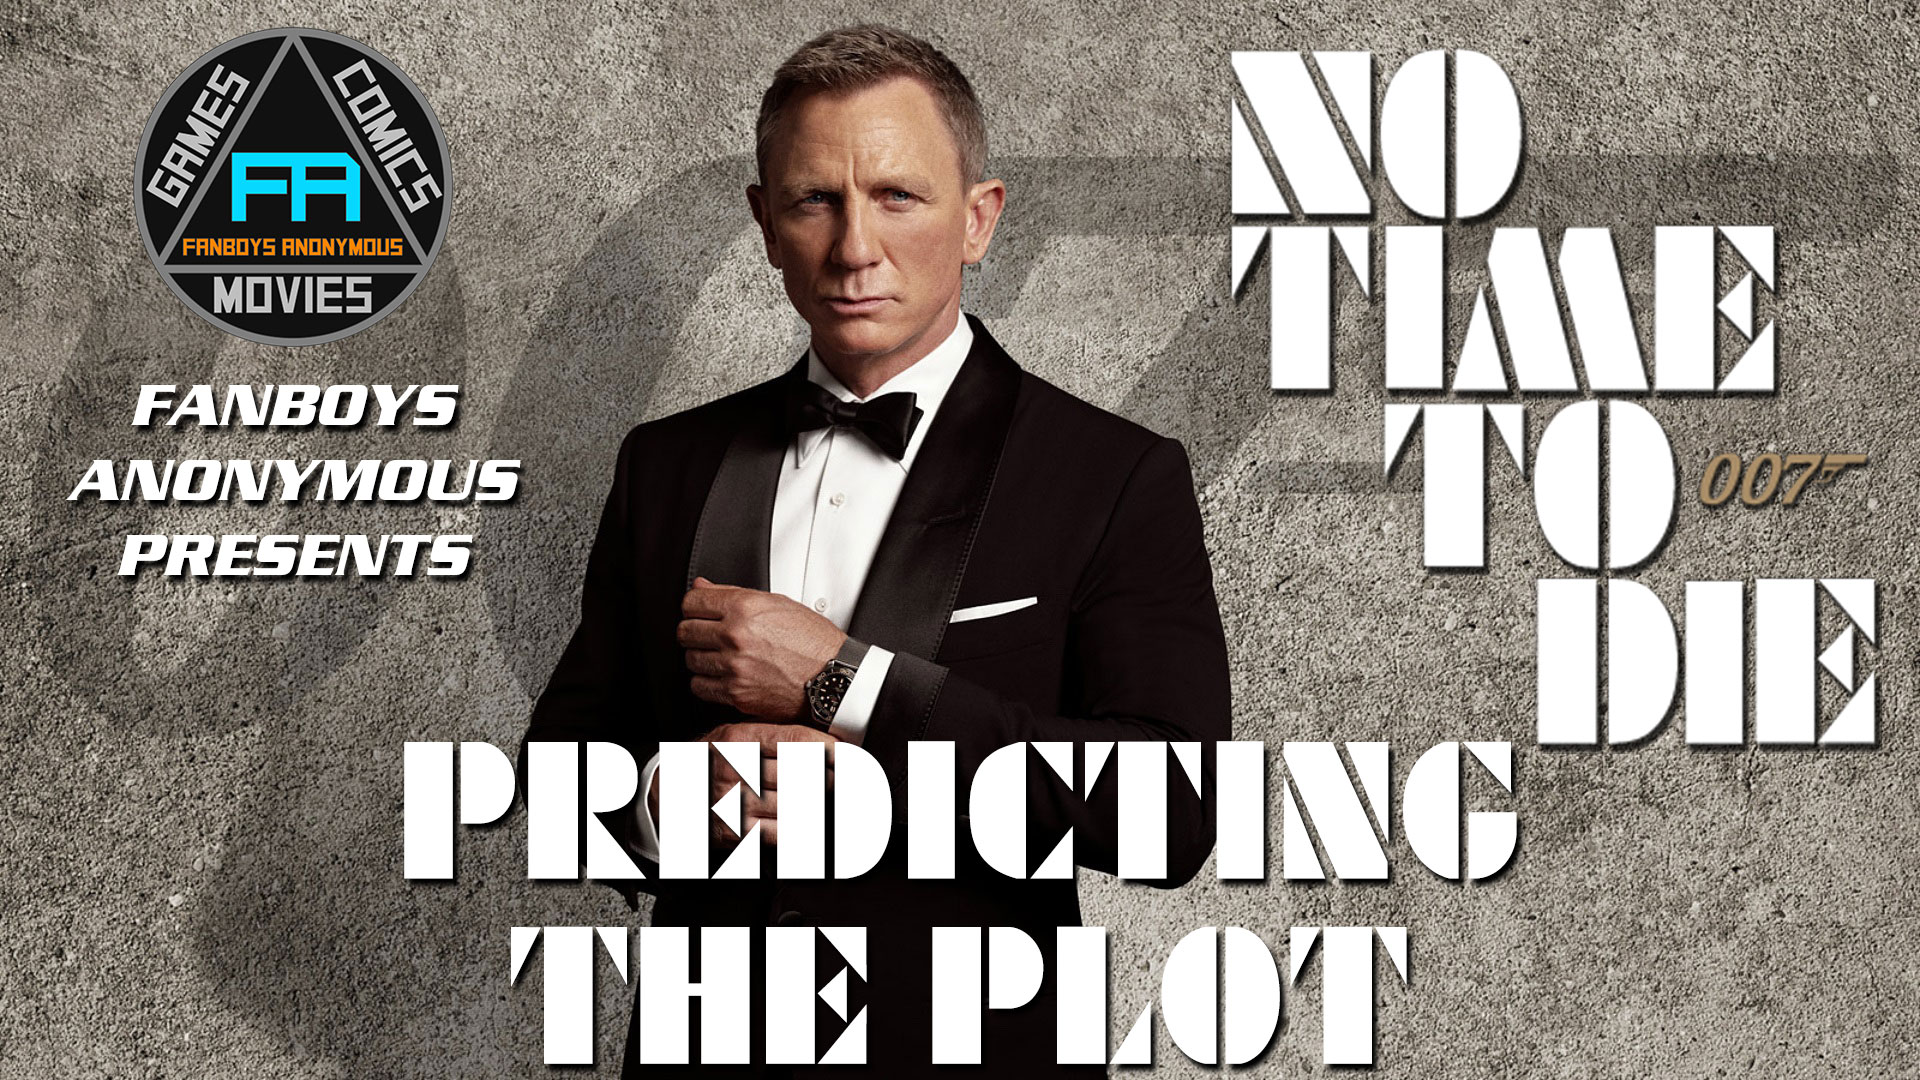 What is the plot of 007 No Time to Die James Bond film?